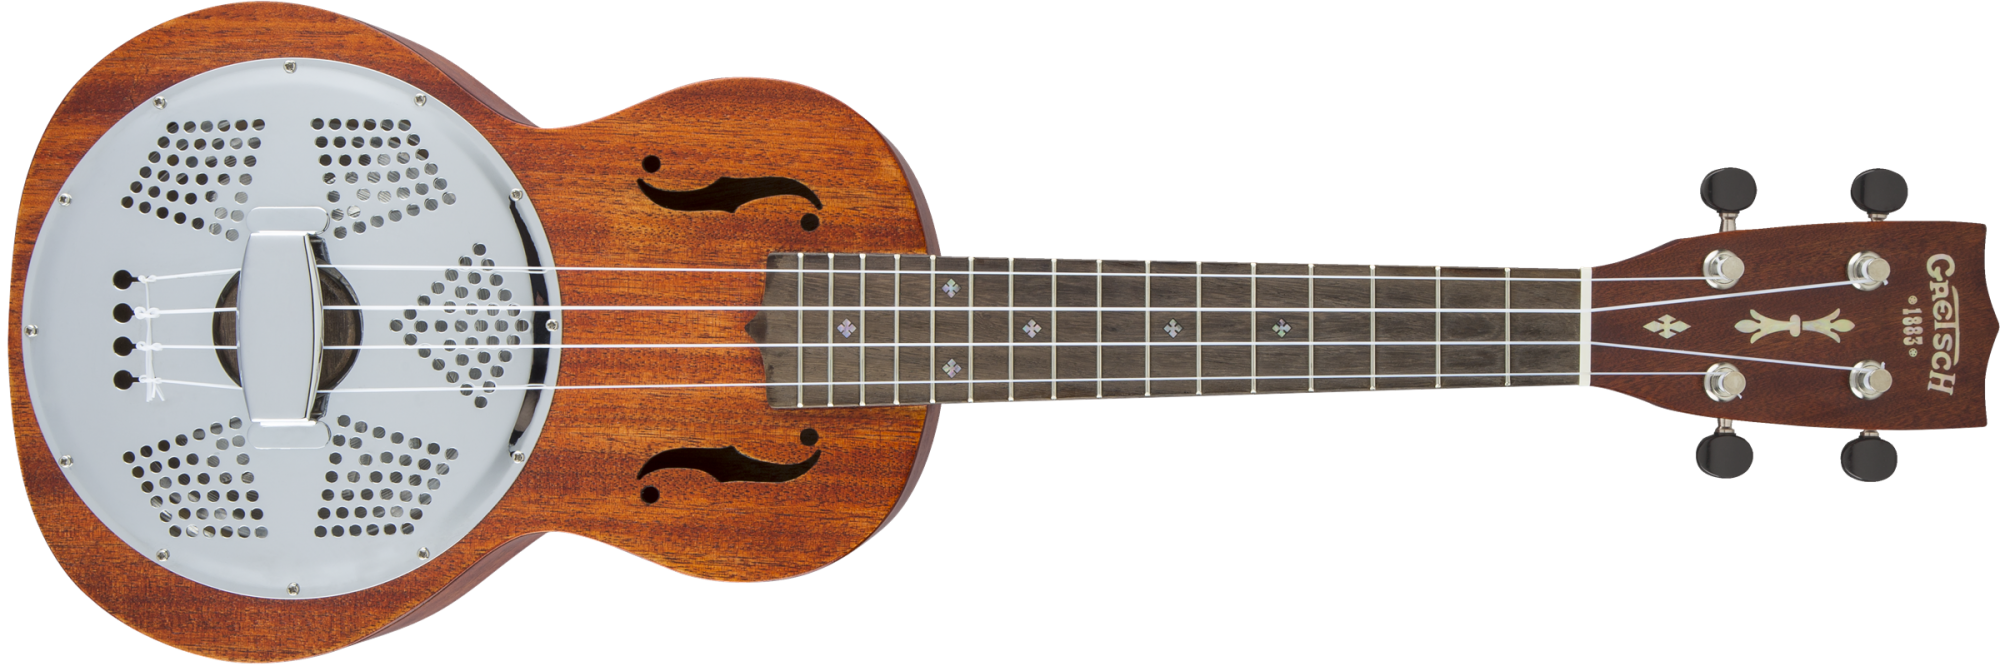 Gretsch G9112 Resonator-Ukulele with Gig Bag, Ovangkol Fingerboard, Biscuit Cone, Honey Mahogany Stain